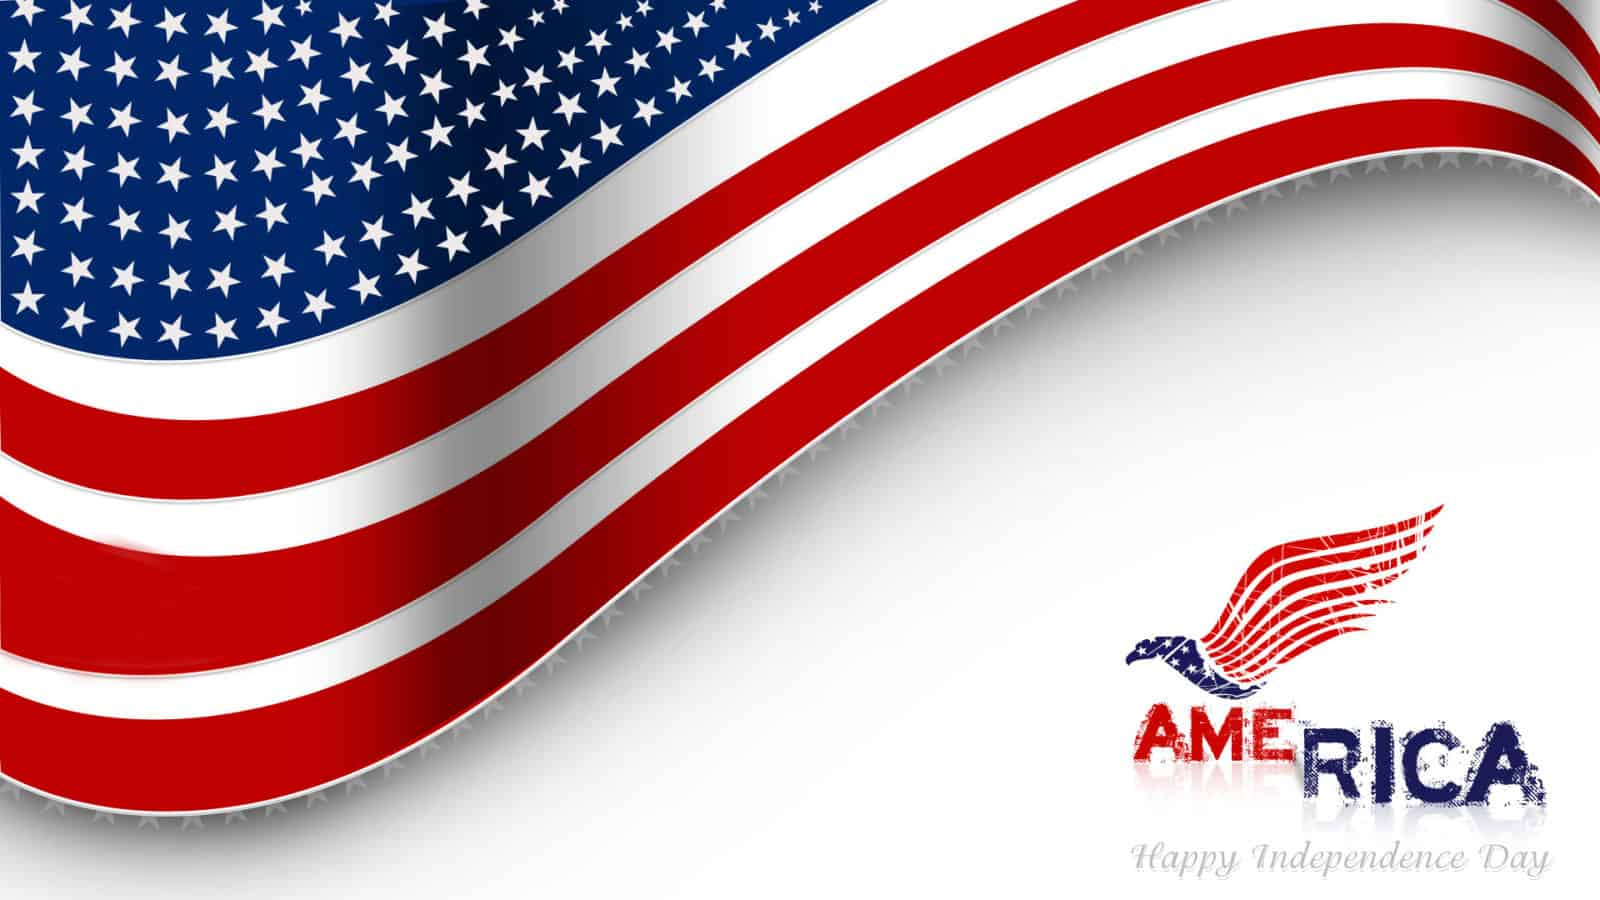 Recent-USA-Celebration-on-4th-July-Wishes